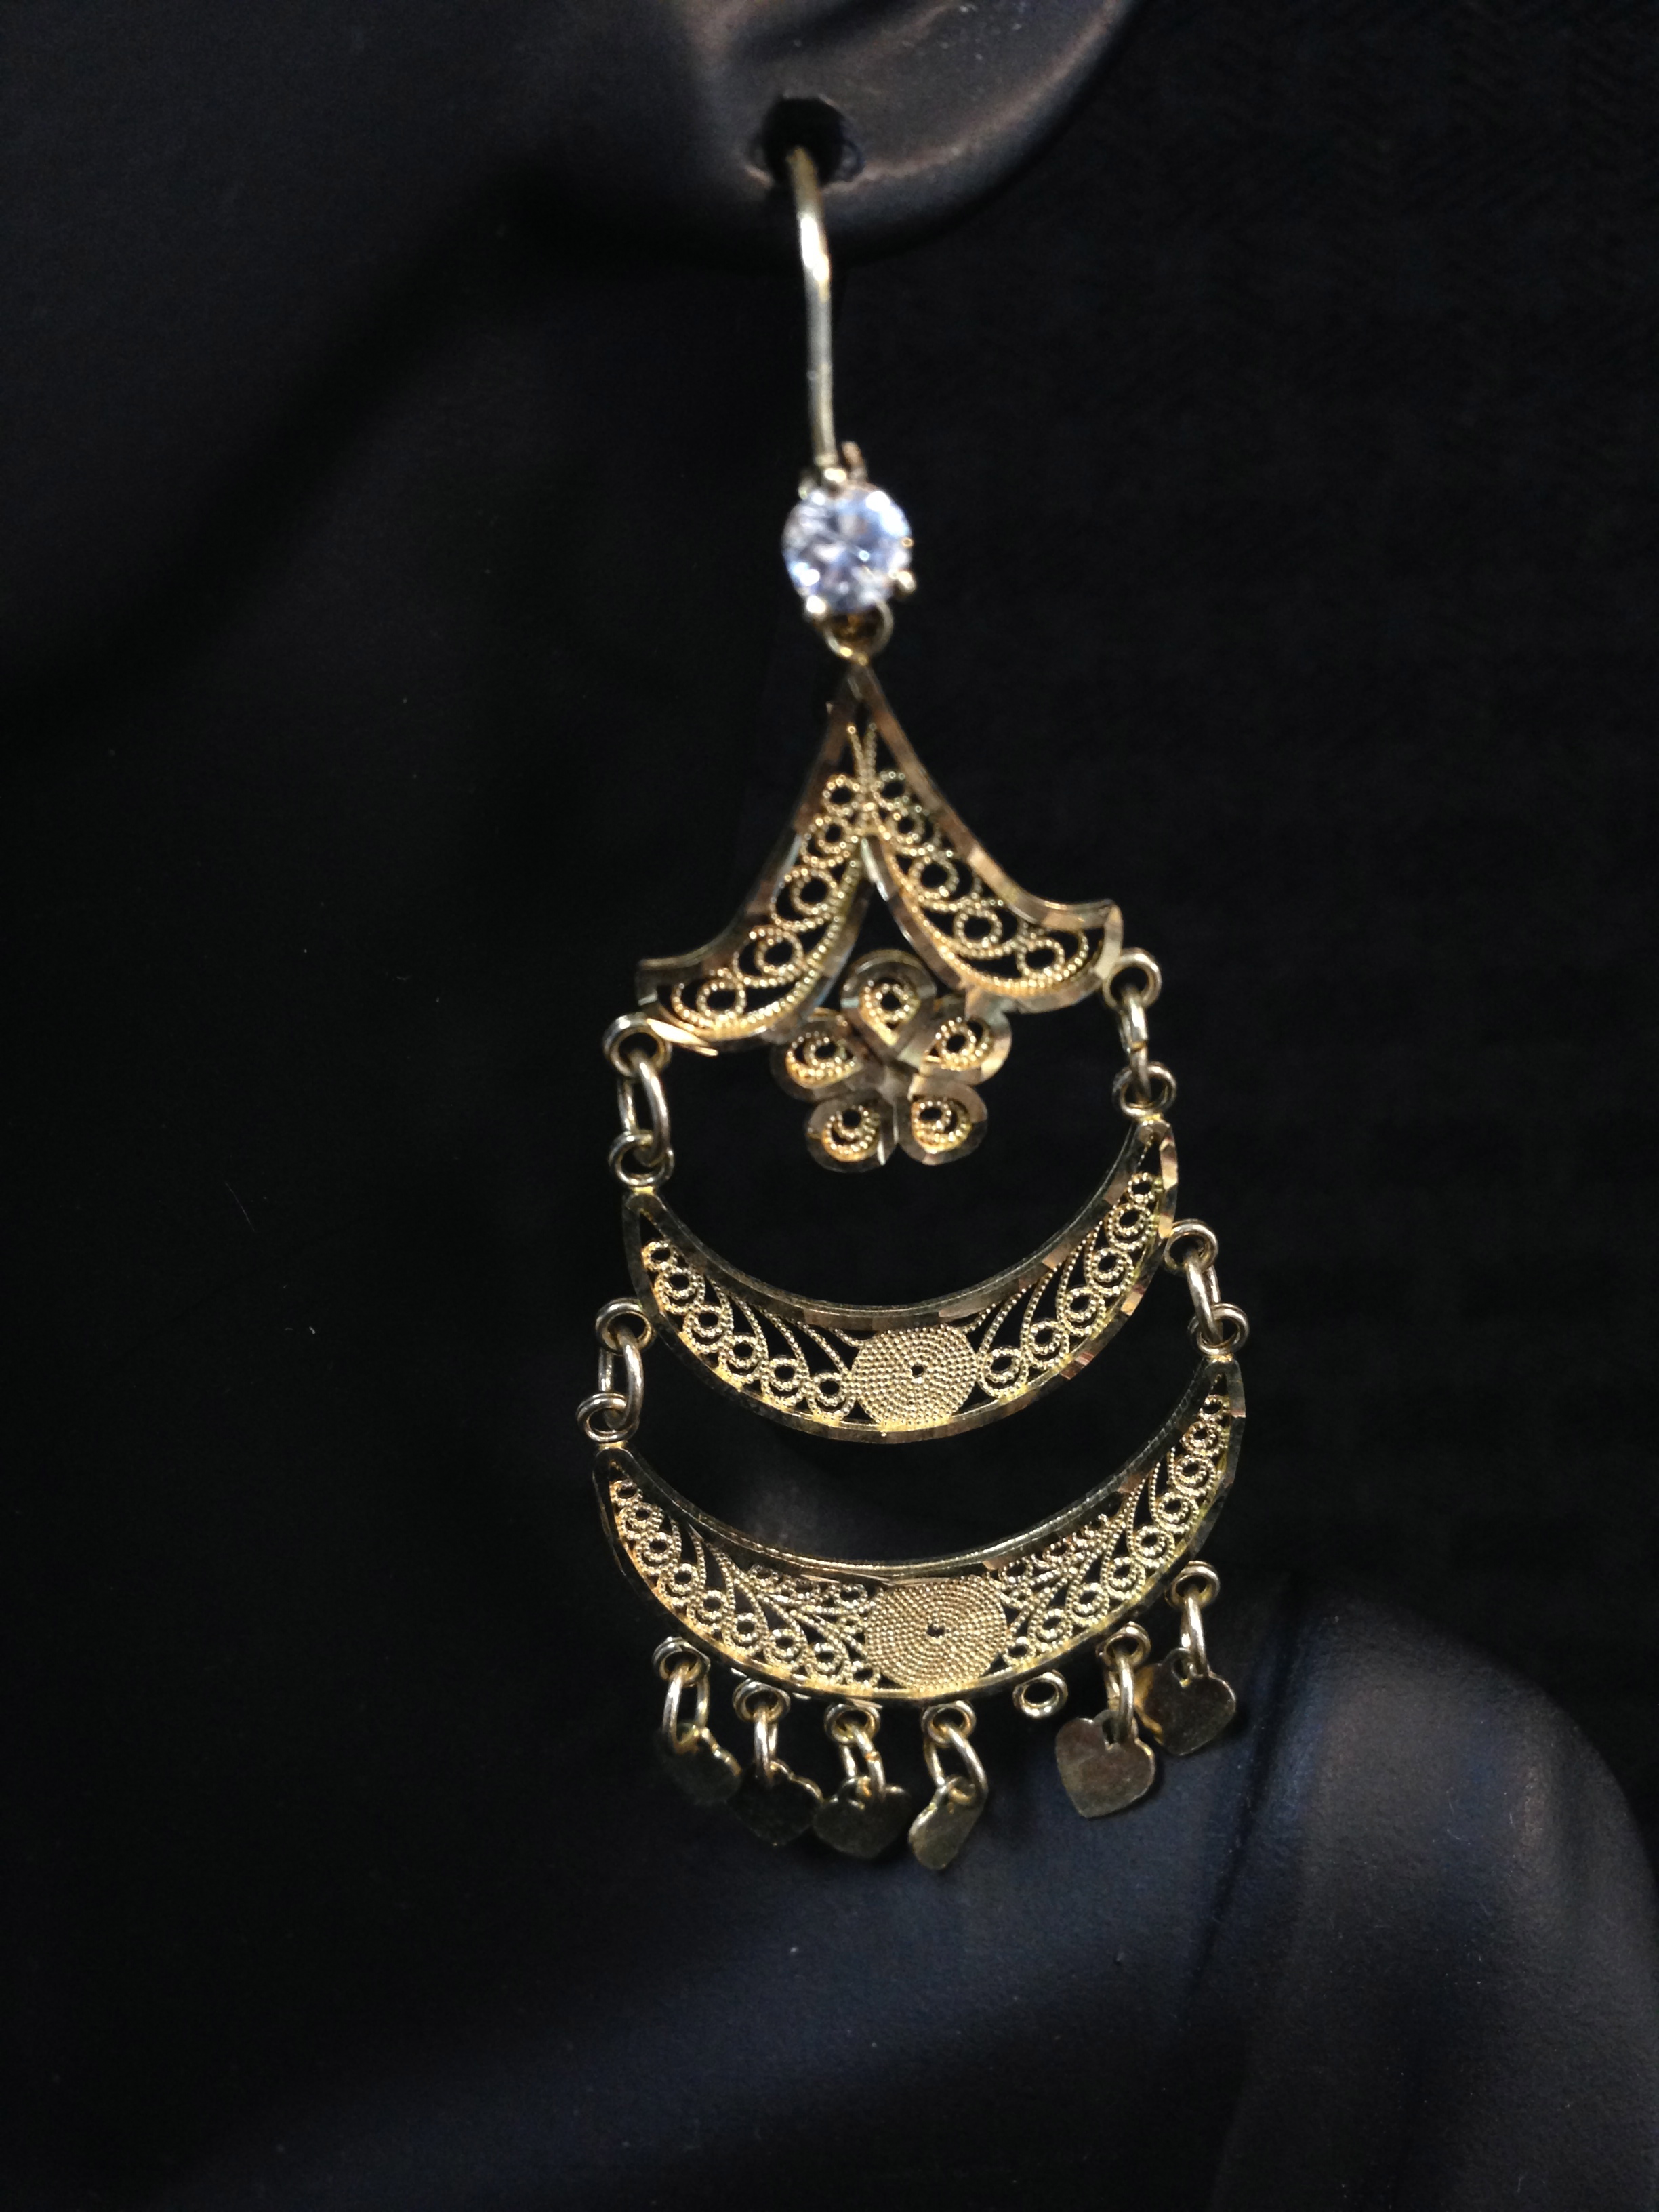 10K Gold Chandelier Style Earrings